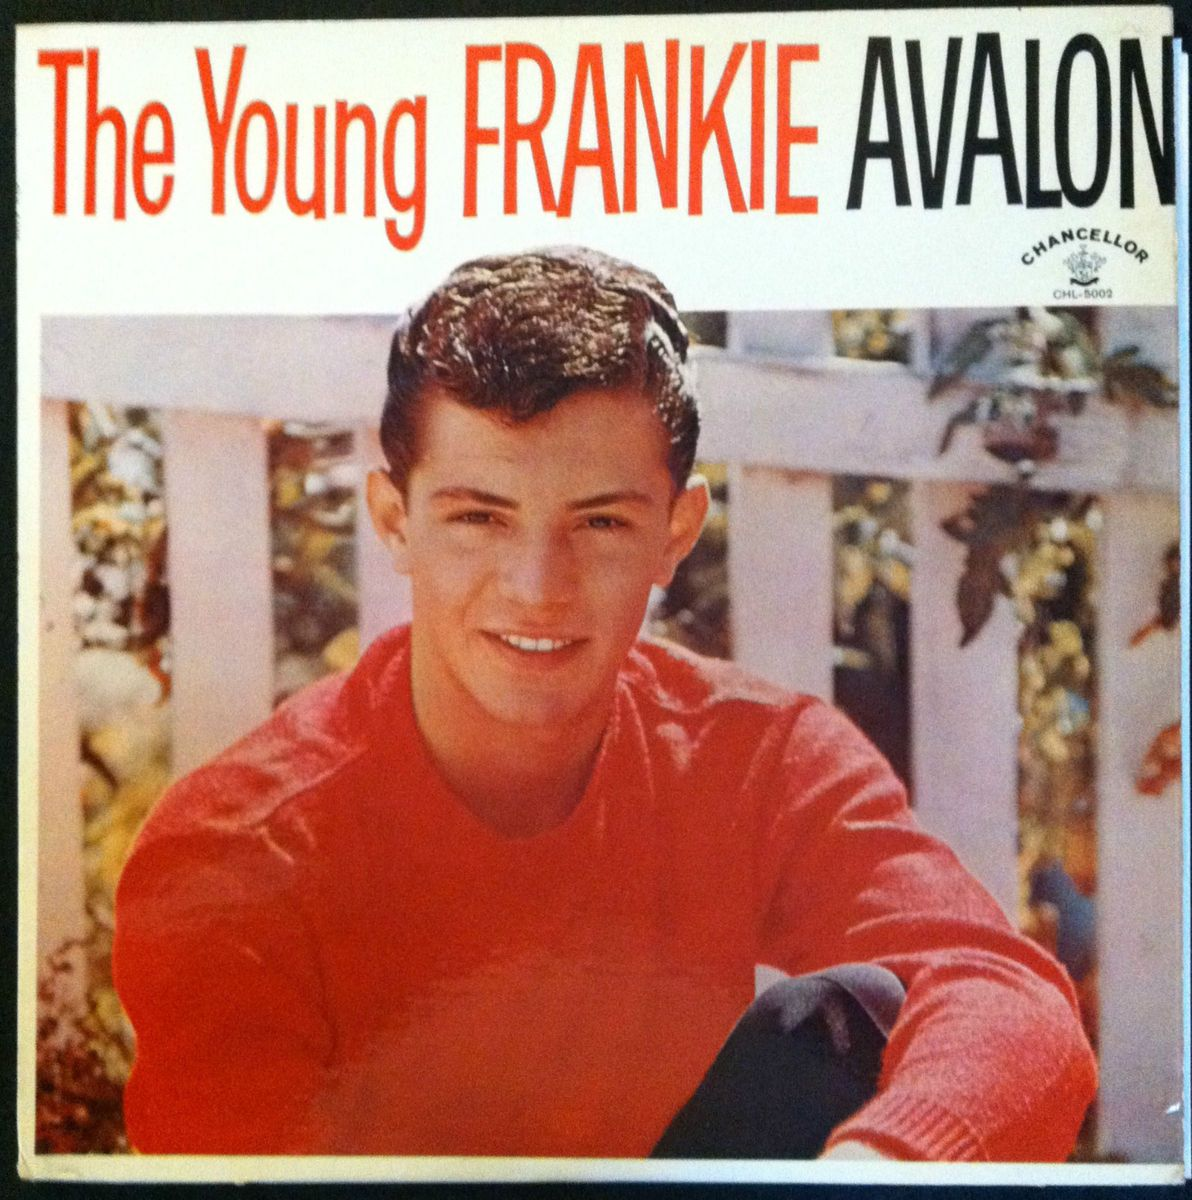 Frankie Avalon The Young Frankie Avalon Chancellor 1959 CHL 5002 VG